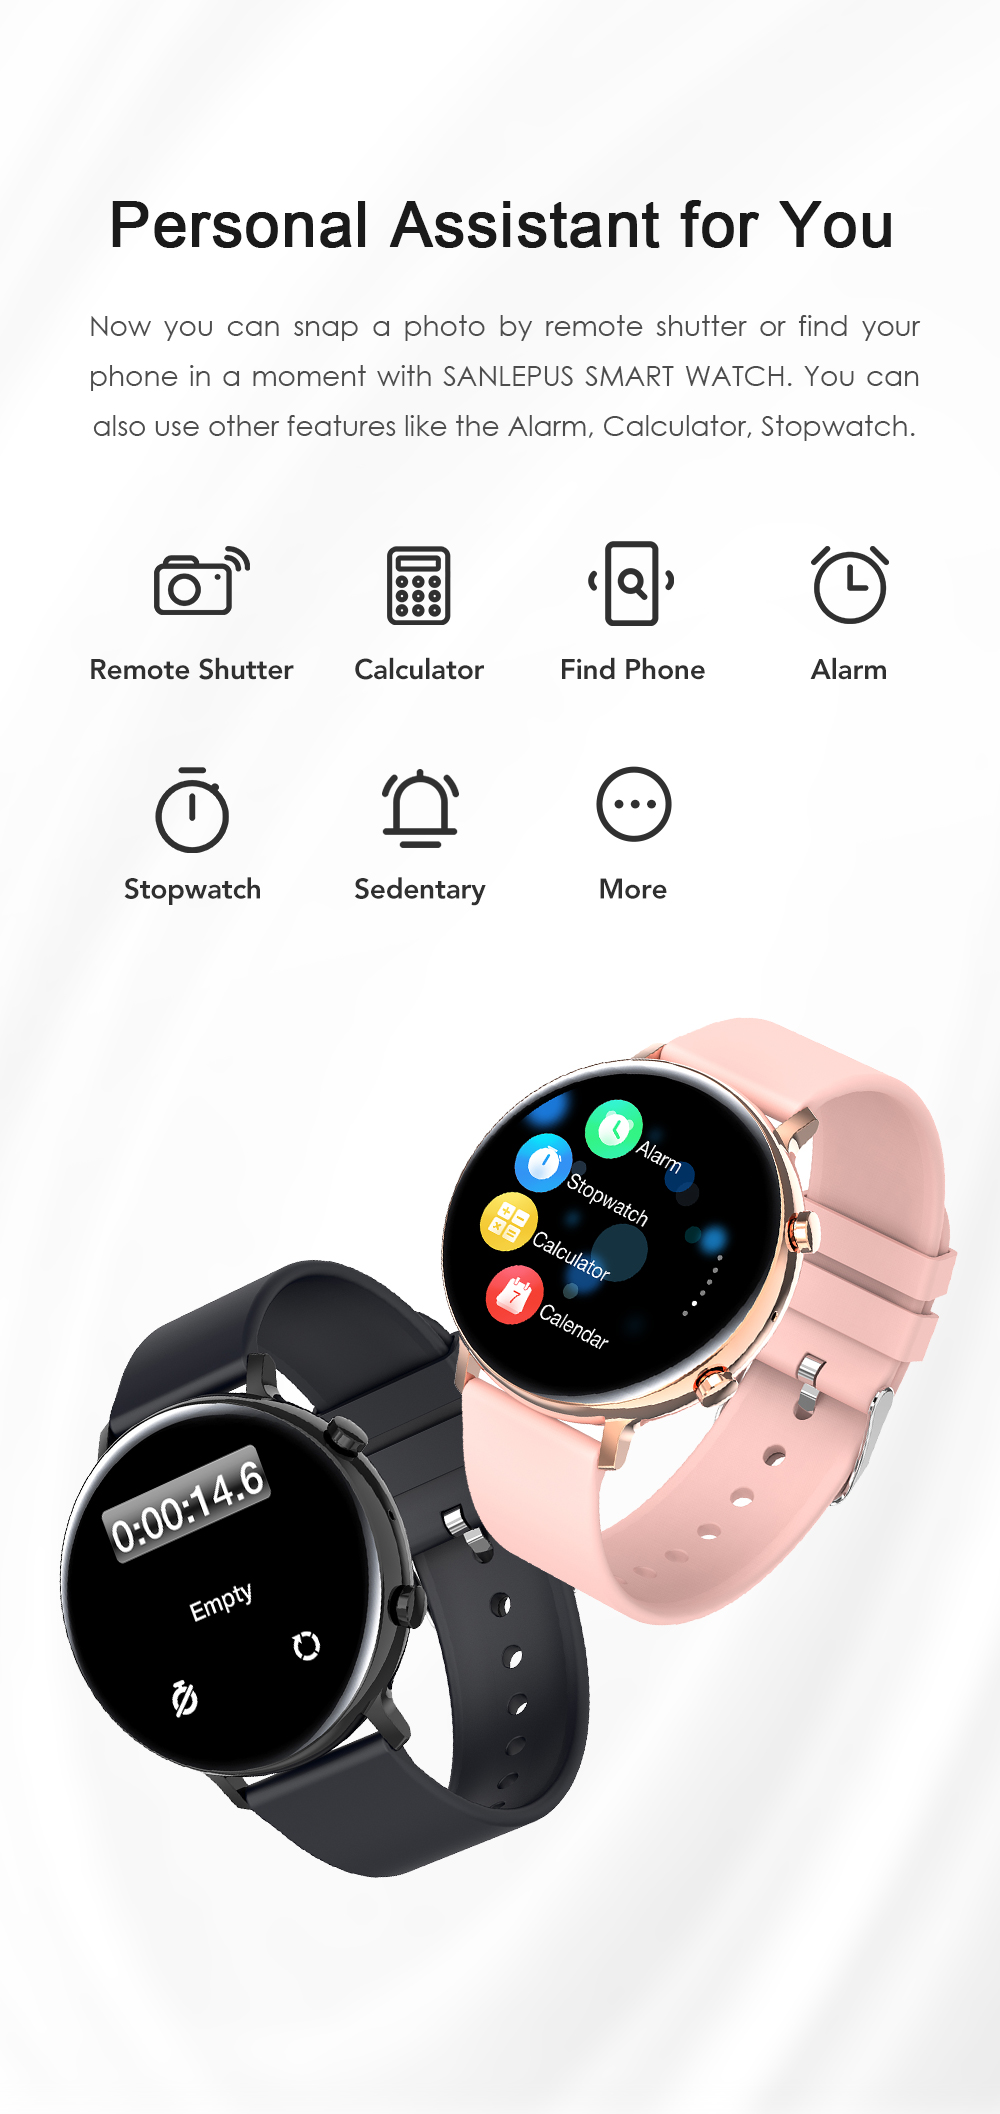 H24a7756370a4448ca4244c1b0d8e9fcdl SANLEPUS ECG PPG Smart Watch With Dial Calls 2021 New Men Women Smartwatch Blood Pressure Monitor For Android Samsung Apple